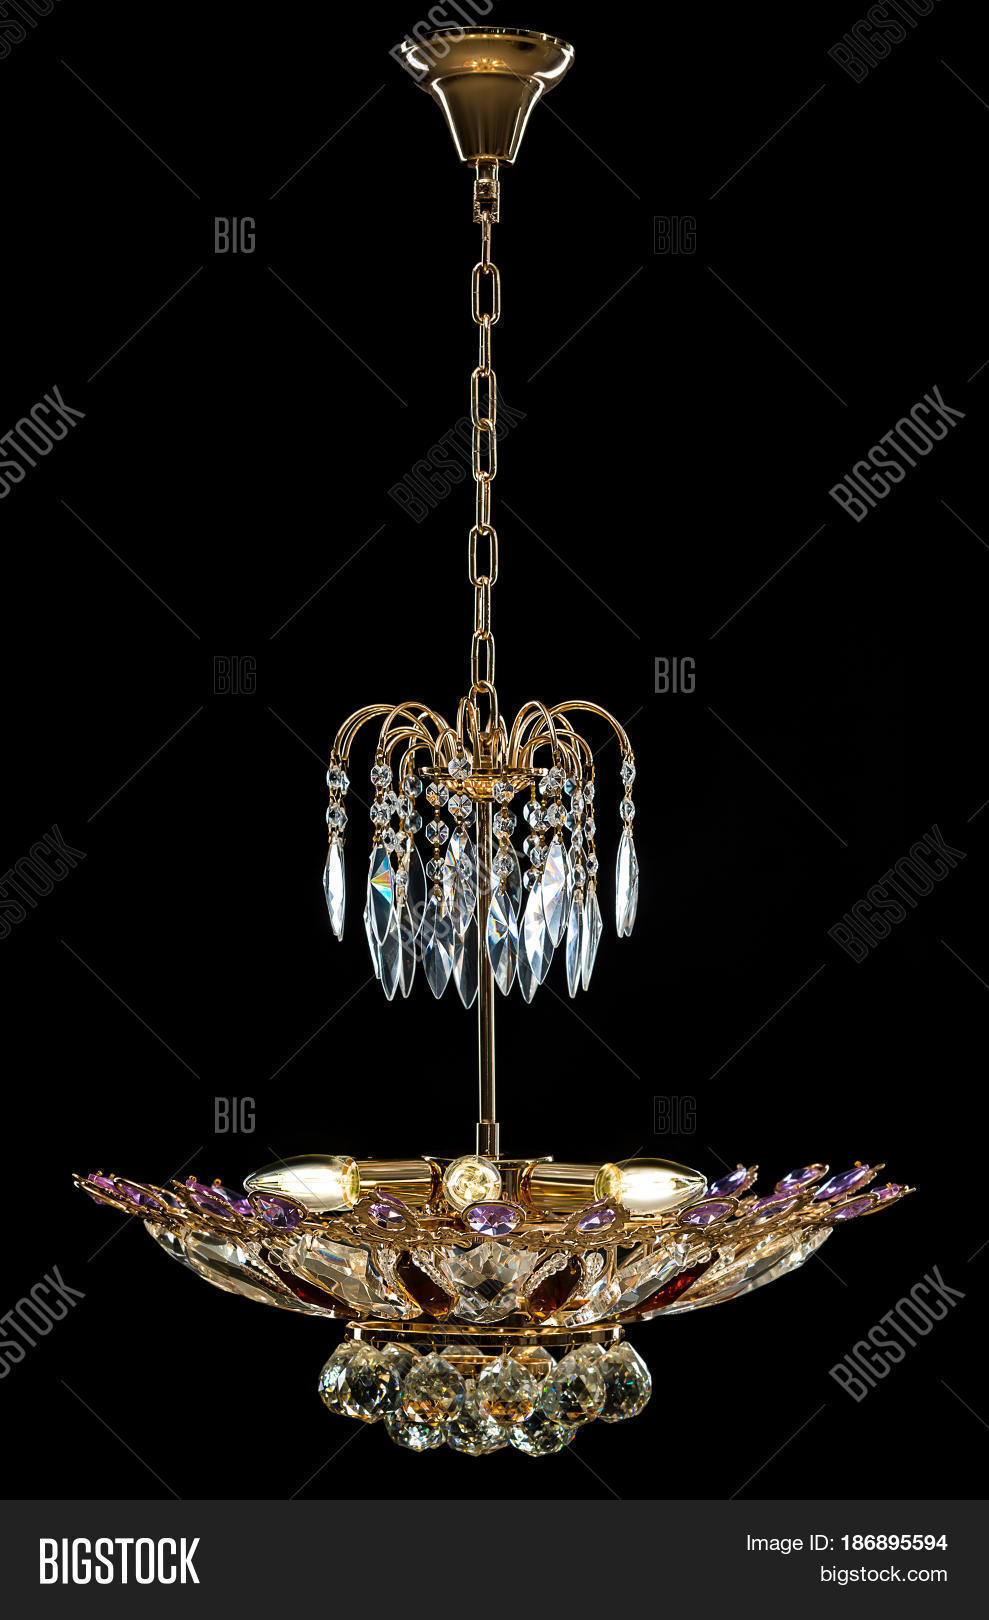 Contemporary Gold Chandelier Isolated On Black Background Crystal Decorated Purple Crystals